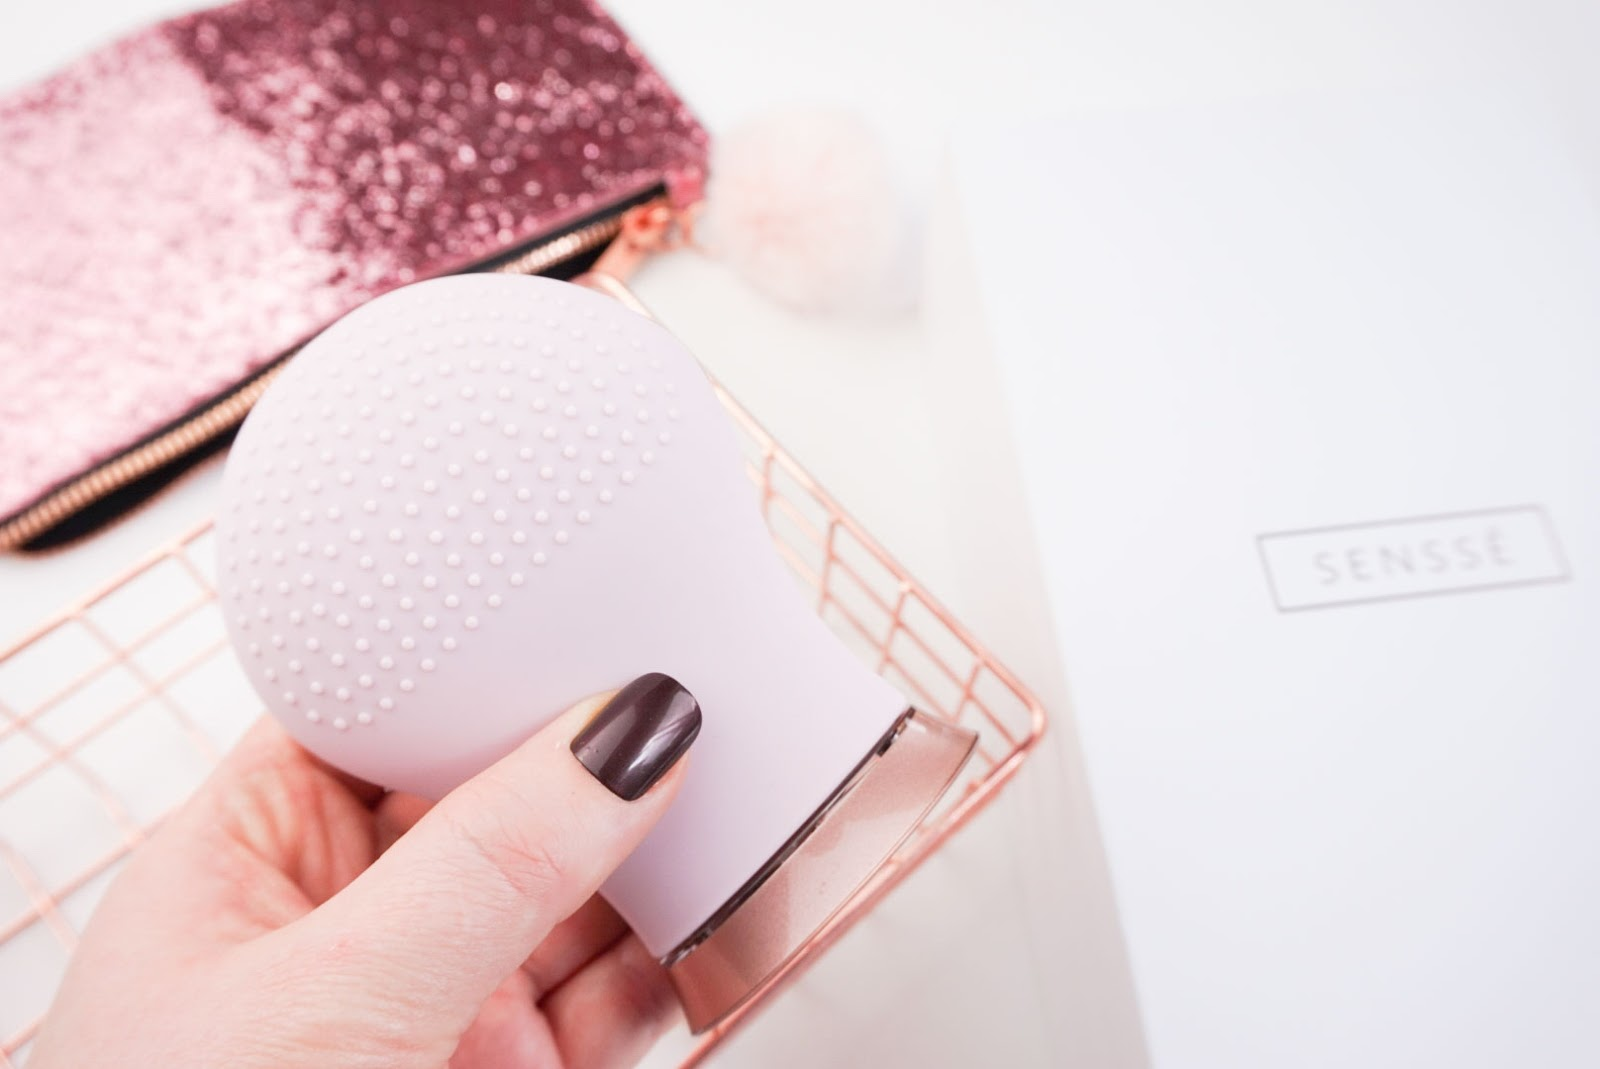 SENSSE Silicone Facial Cleansing Brush and Exfoliator Review